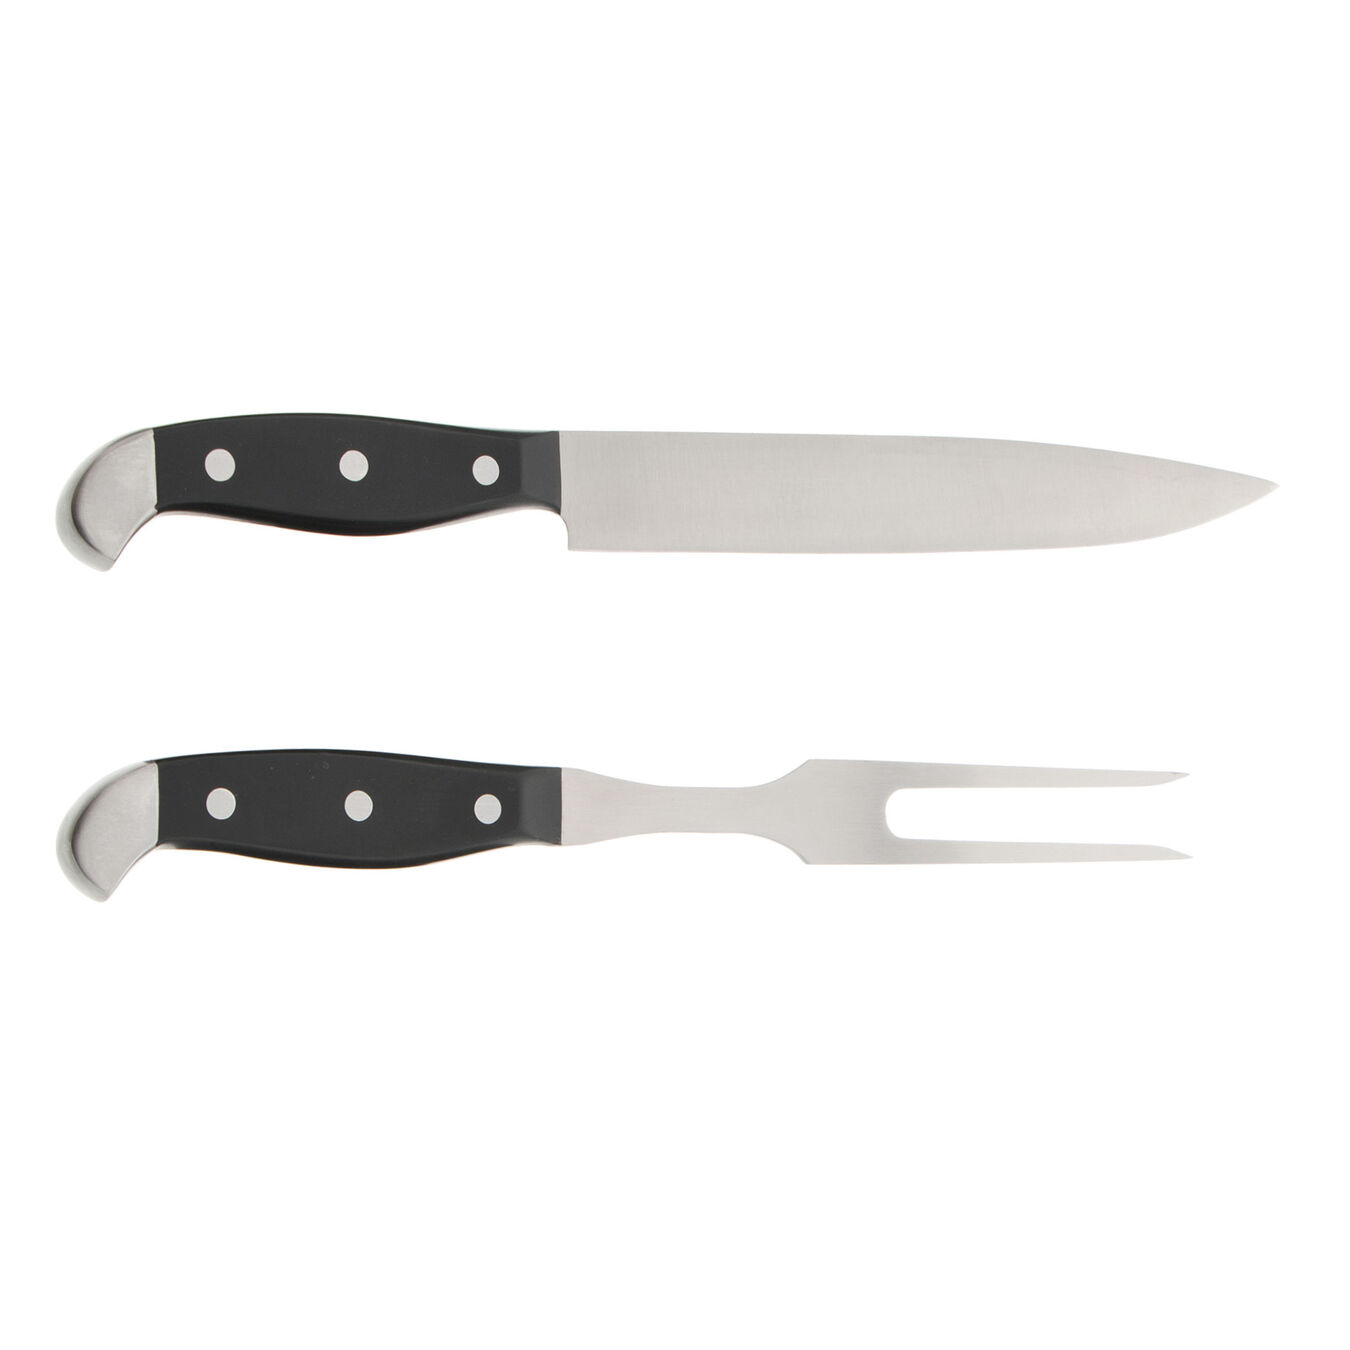 2-pc, Slicing/Carving Knife,,large 2